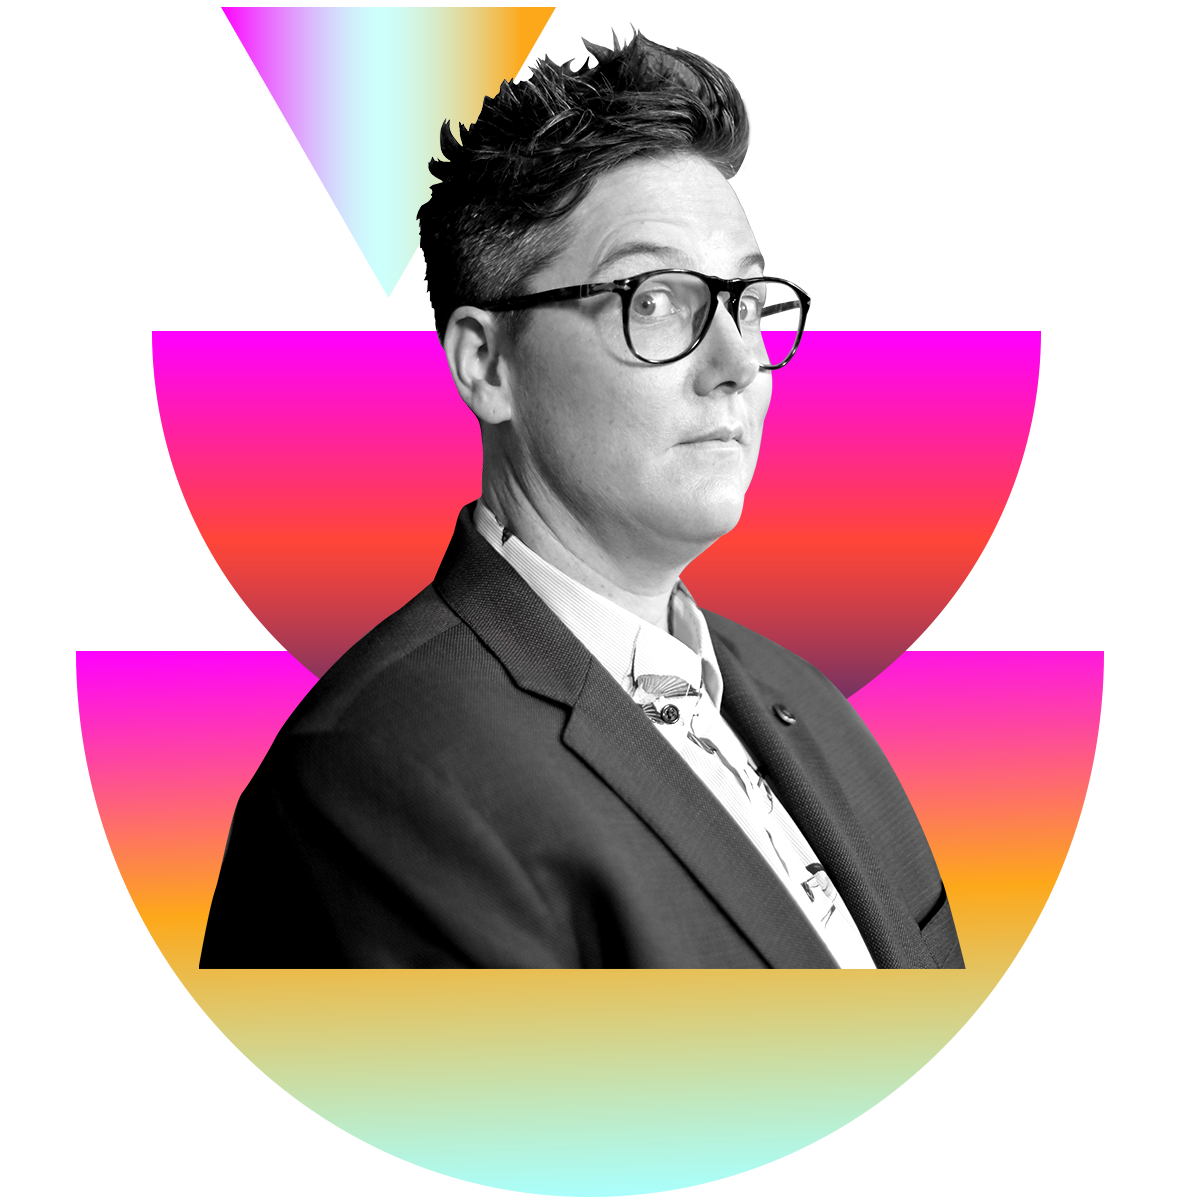 Photo illustration of Hannah Gadsby in black and white surrounded by colored gradients